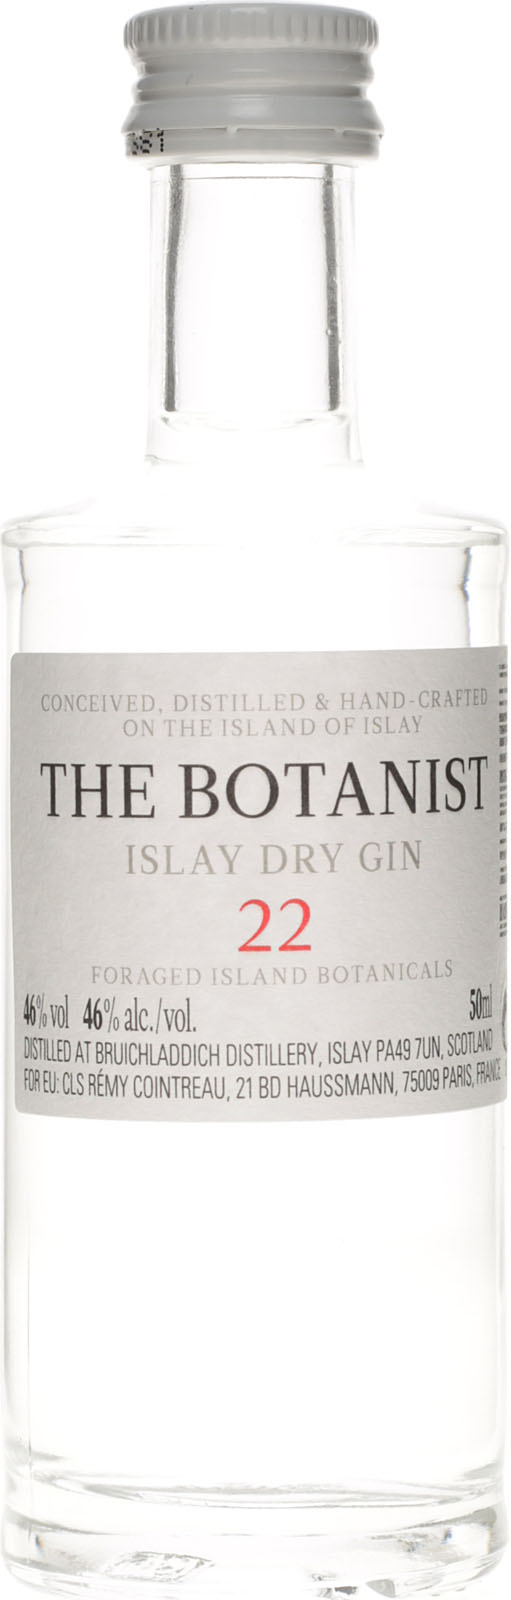 botanist islay dry gin bruichladdich 50ml 40. Black Bedroom Furniture Sets. Home Design Ideas